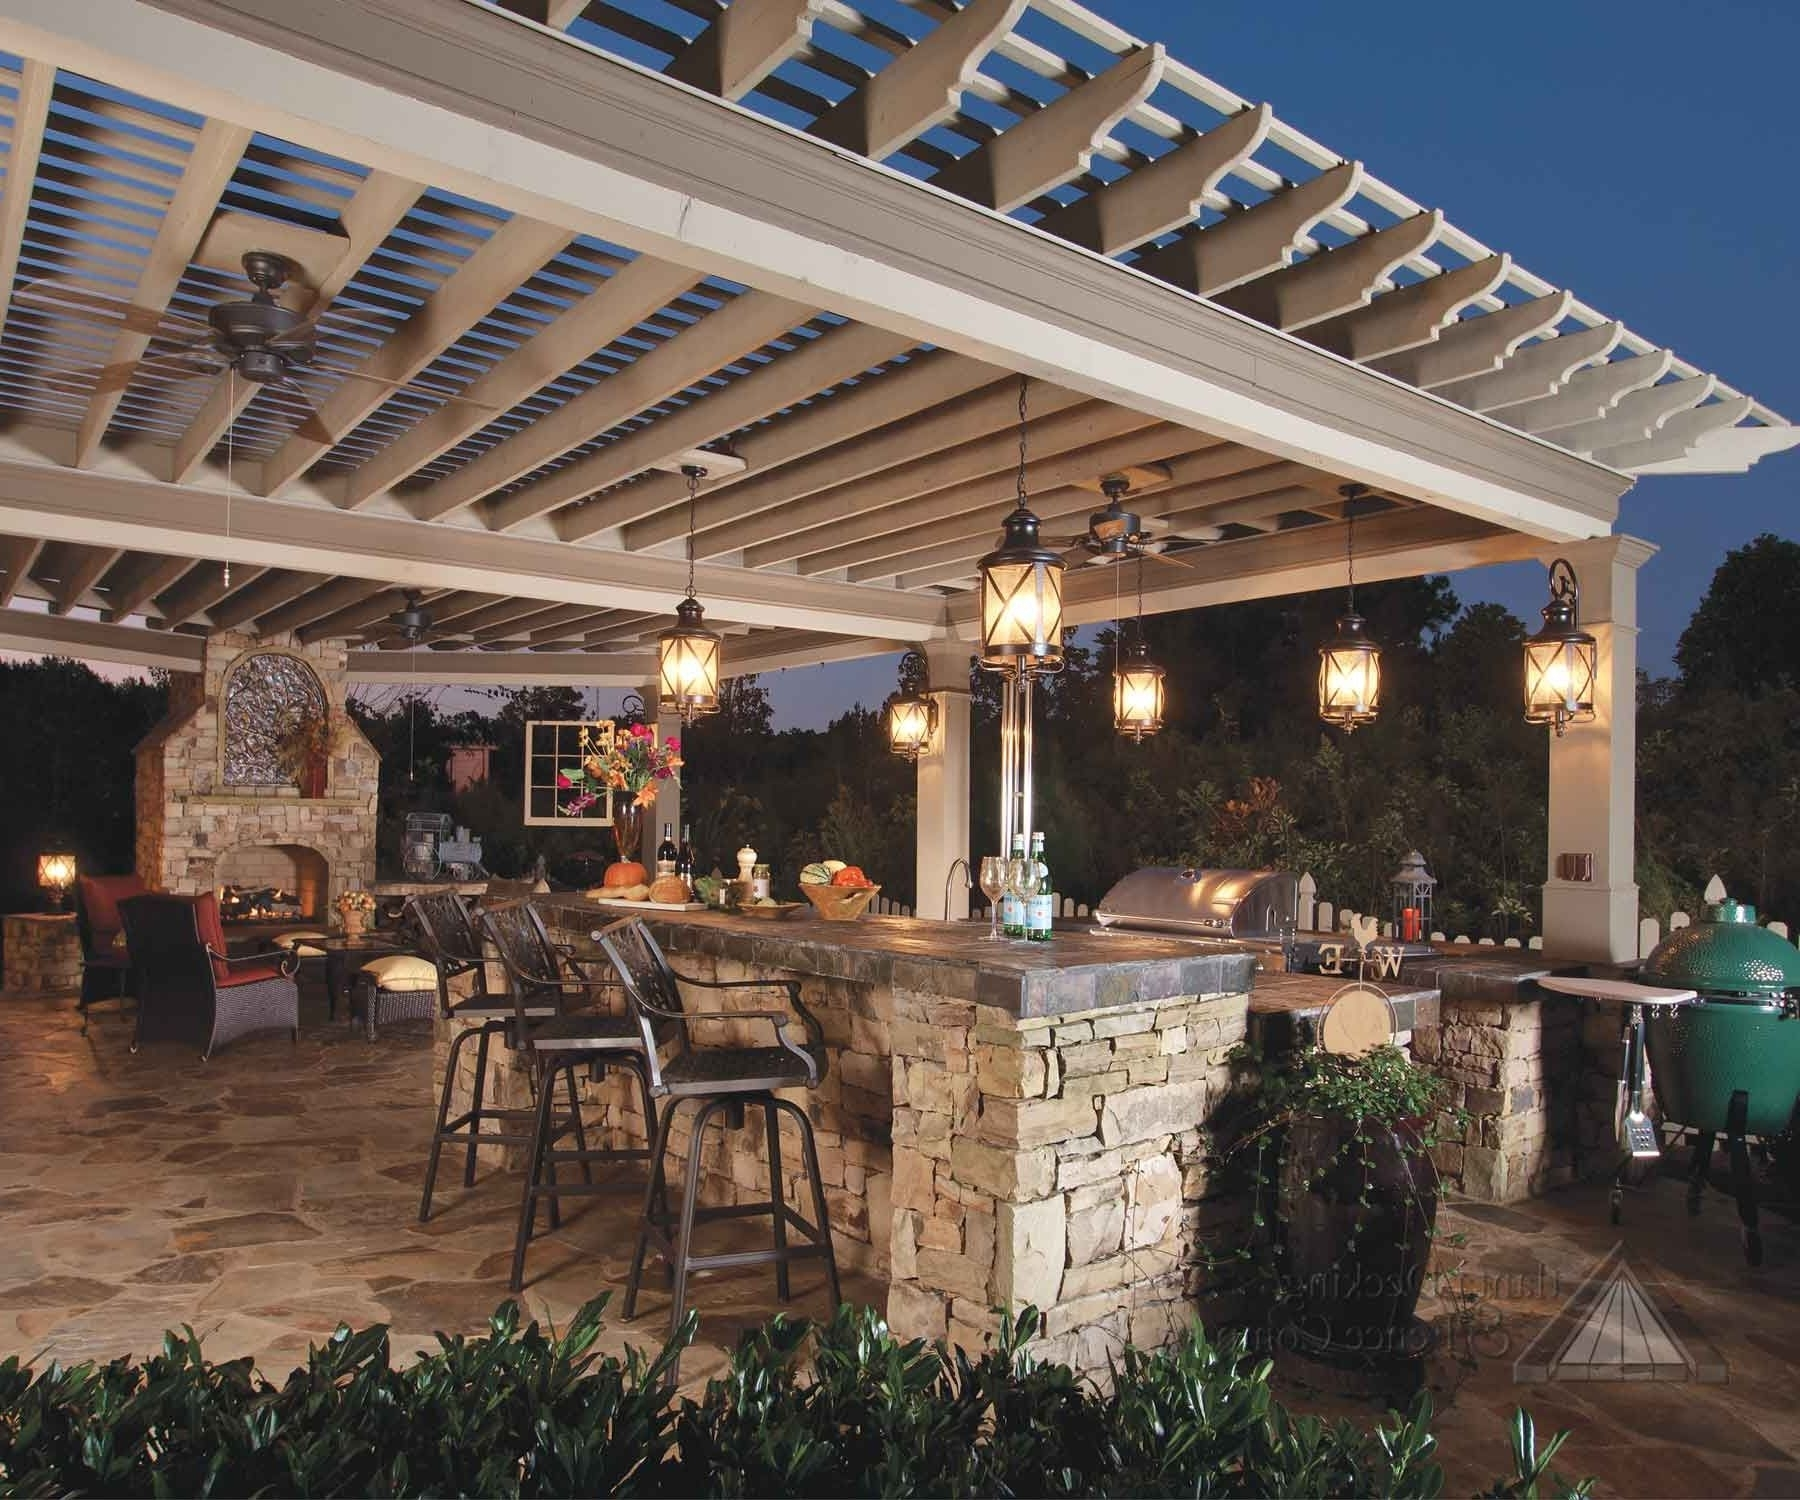 Gorgeous Outdoor Kitchen Lighting Fixtures On House Design Ideas Within Wayfair Outdoor Hanging Lighting Fixtures (View 7 of 15)